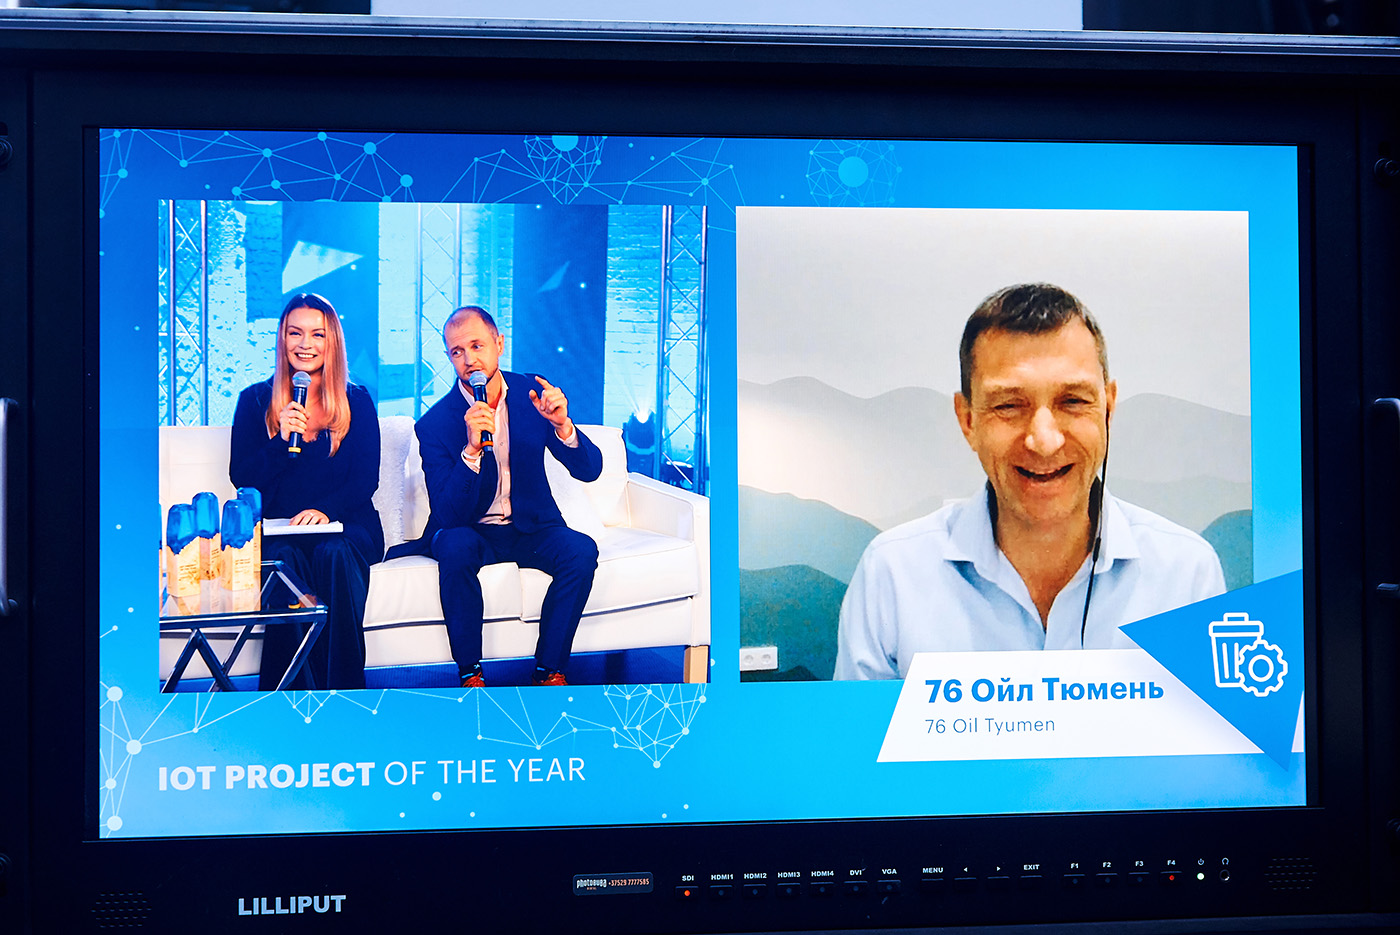 76 Oil Tyumen IoT project of the year